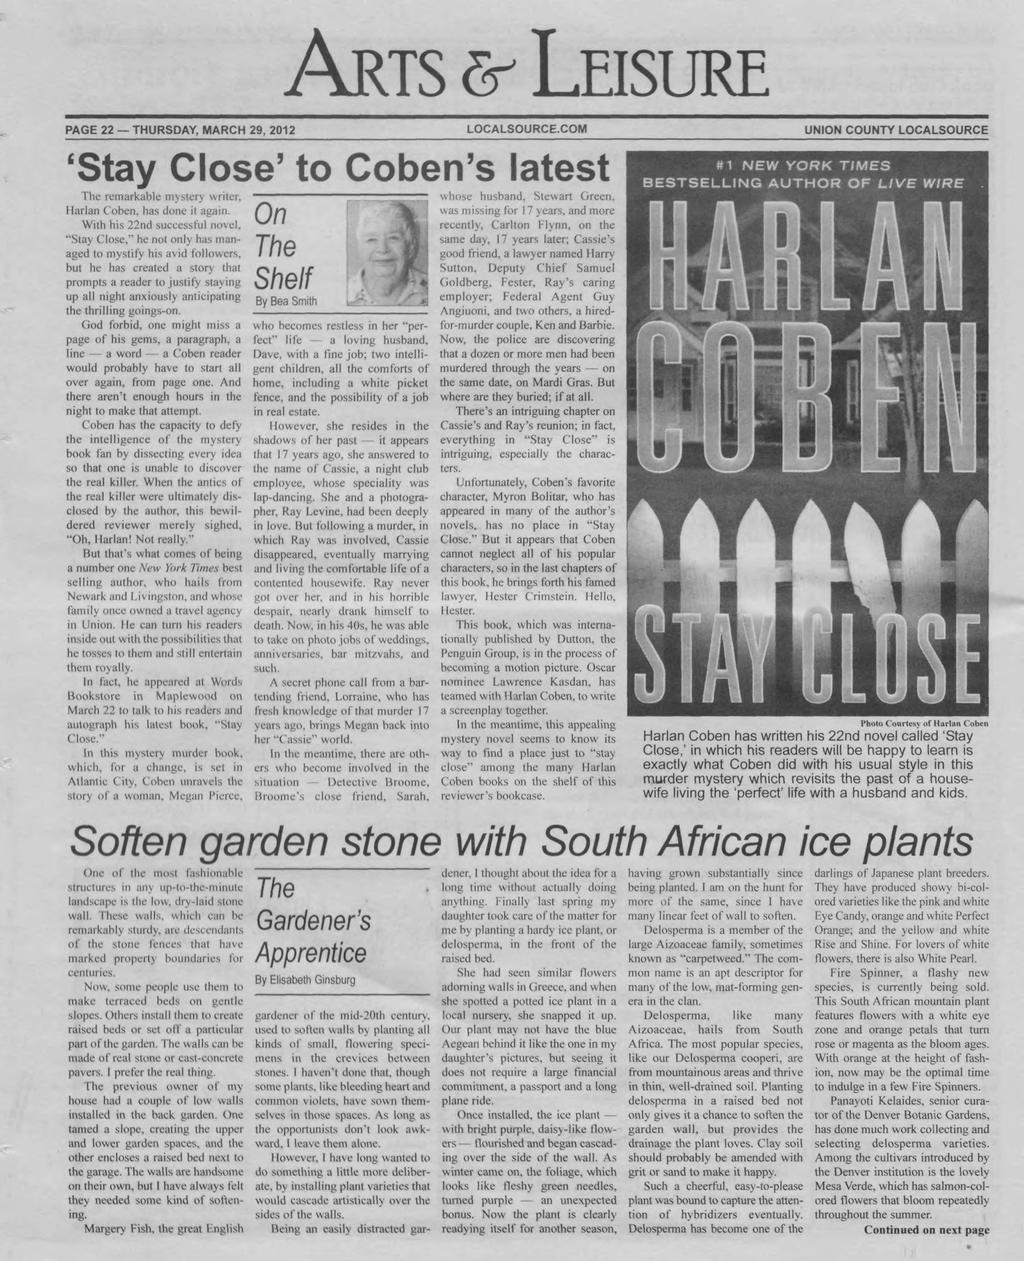 ARTS & LEISURE PAGE 22 THURSDAY, MARCH 29, 2012 LOCALSOURCE.COM COUNTY LOCALSOURCE 'Stay Close' to Coben's latest The remarkable mystery writer, Ilarlan Coben, has done ii again.